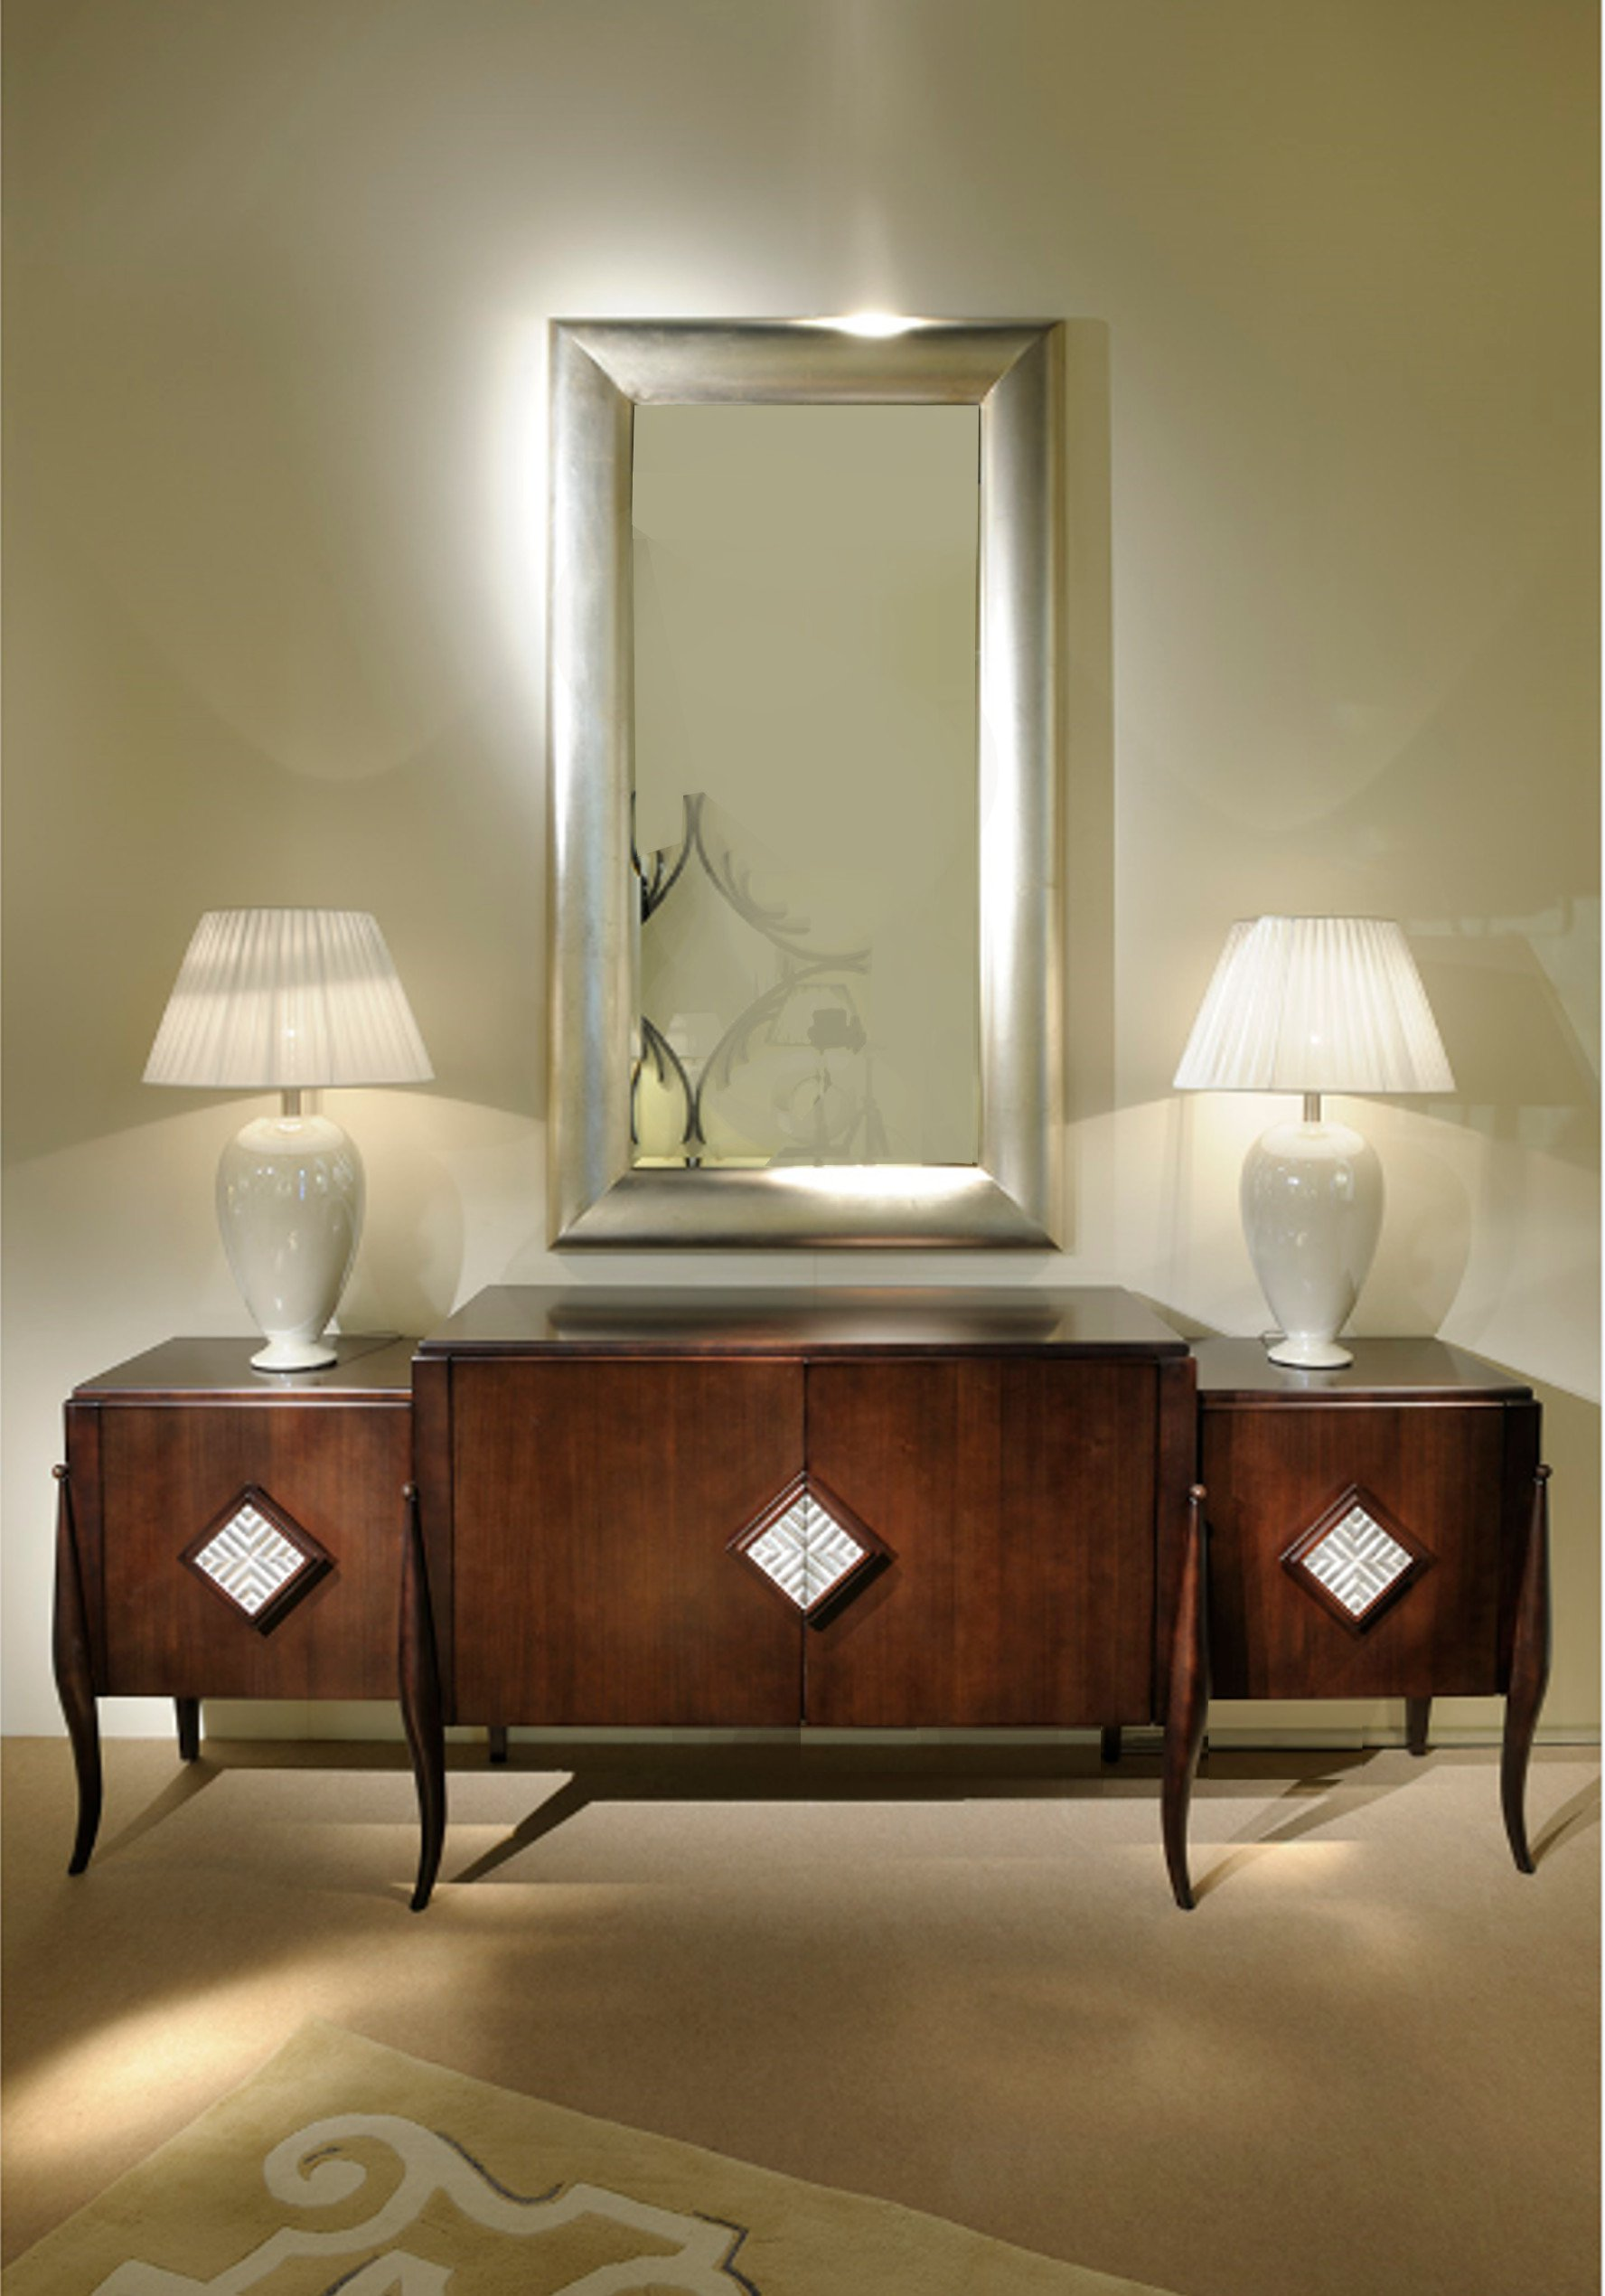 Art Deco Milano Miroir Rectangulaire By Transition By Casali